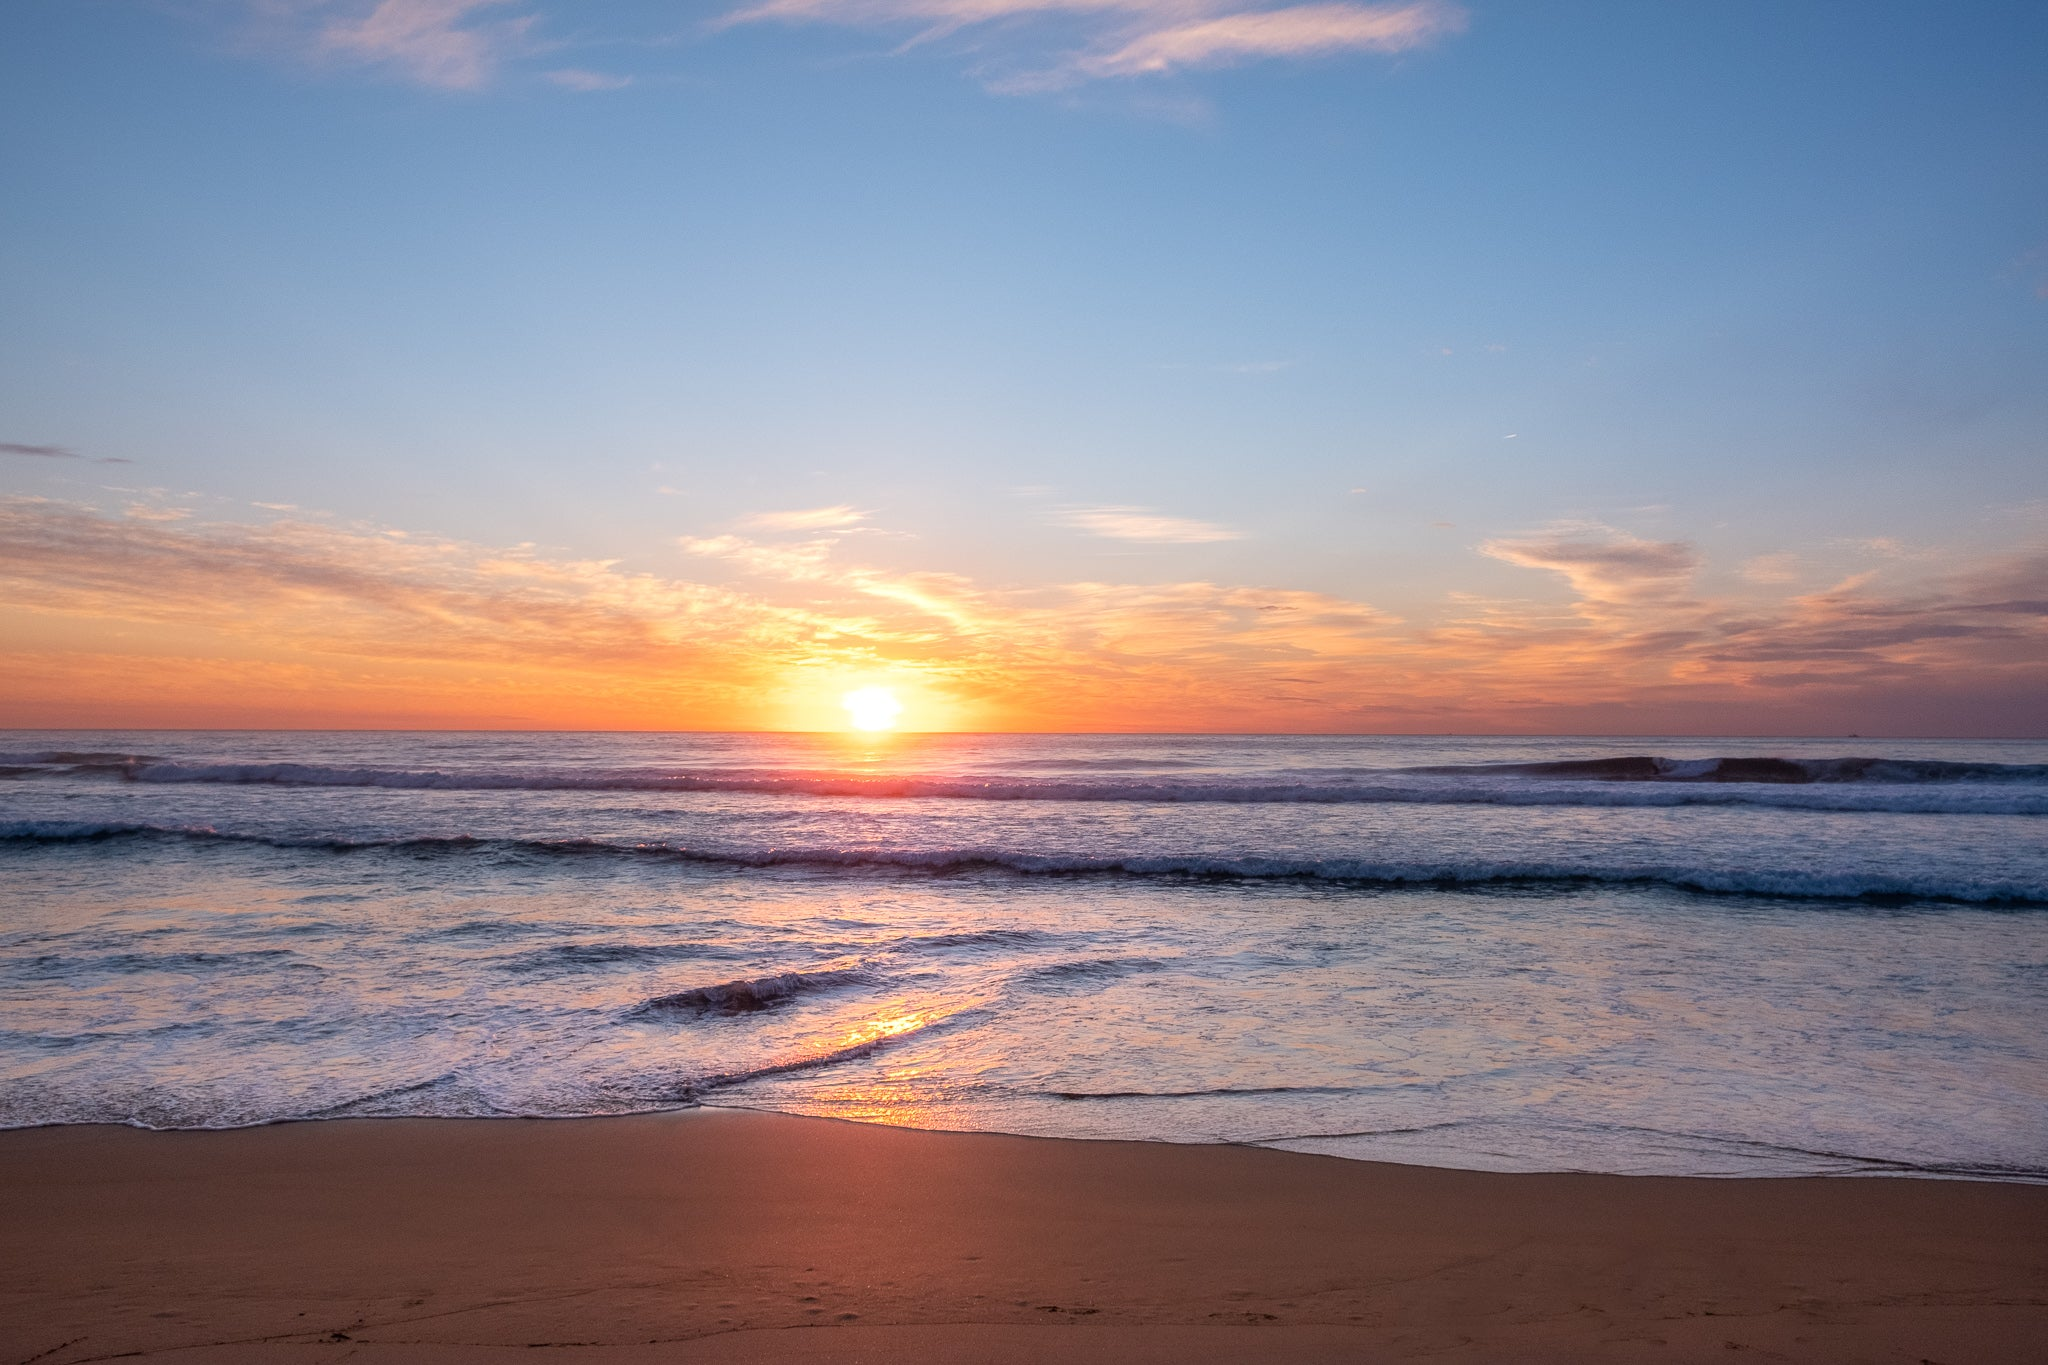 Sunrise photo from the 16th September 2019 at Queenscliff Beach in Sydney